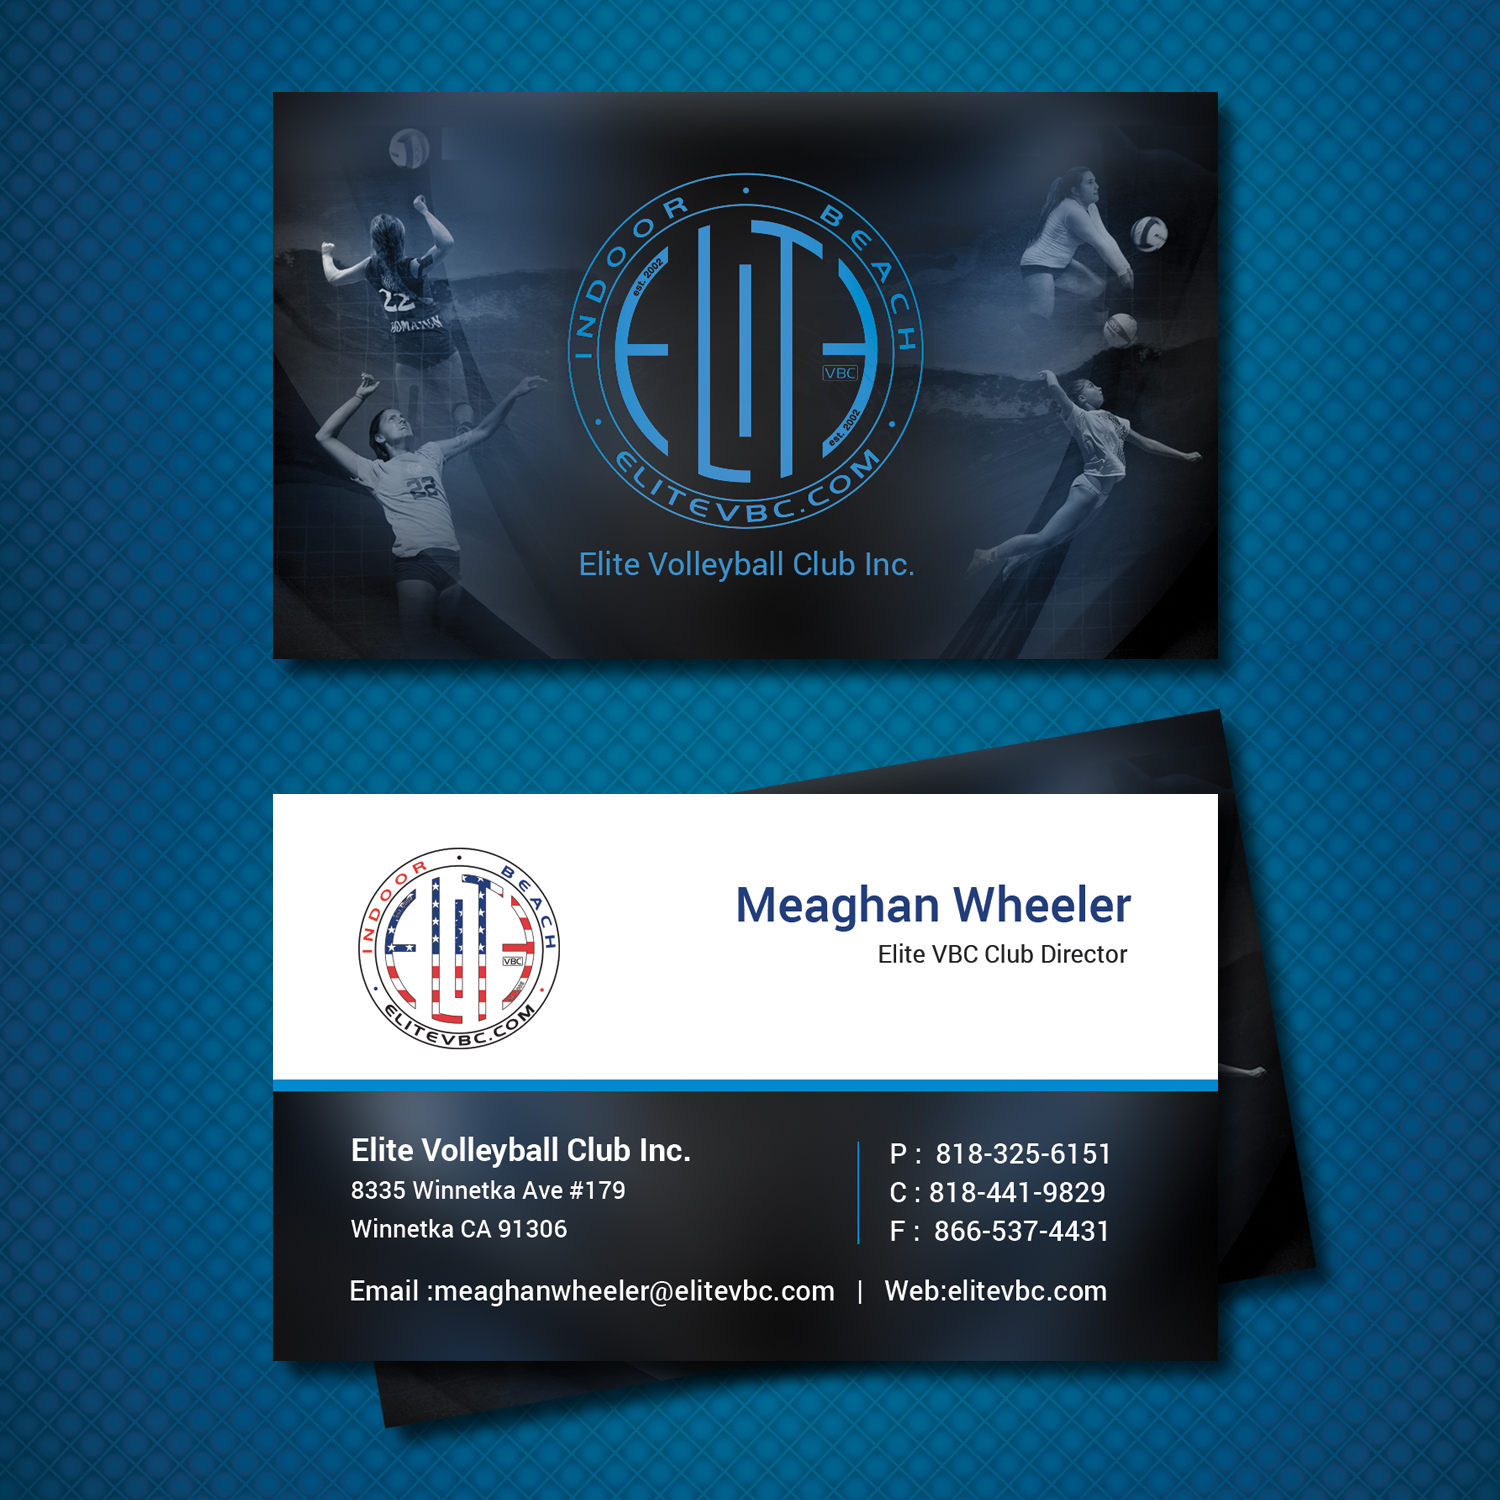 business card design for the elite volleyball club inc by uk